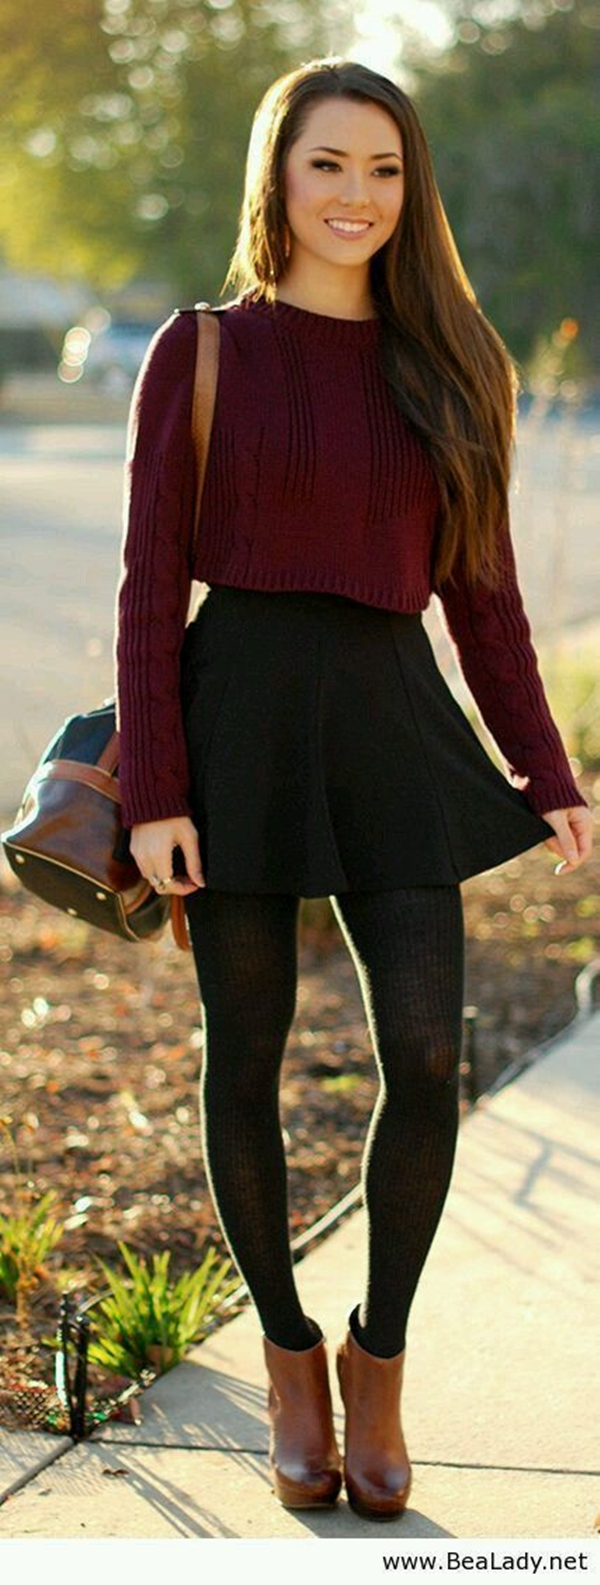 Ways-to-Wear-Crop-Top-Outfits-in-Winters